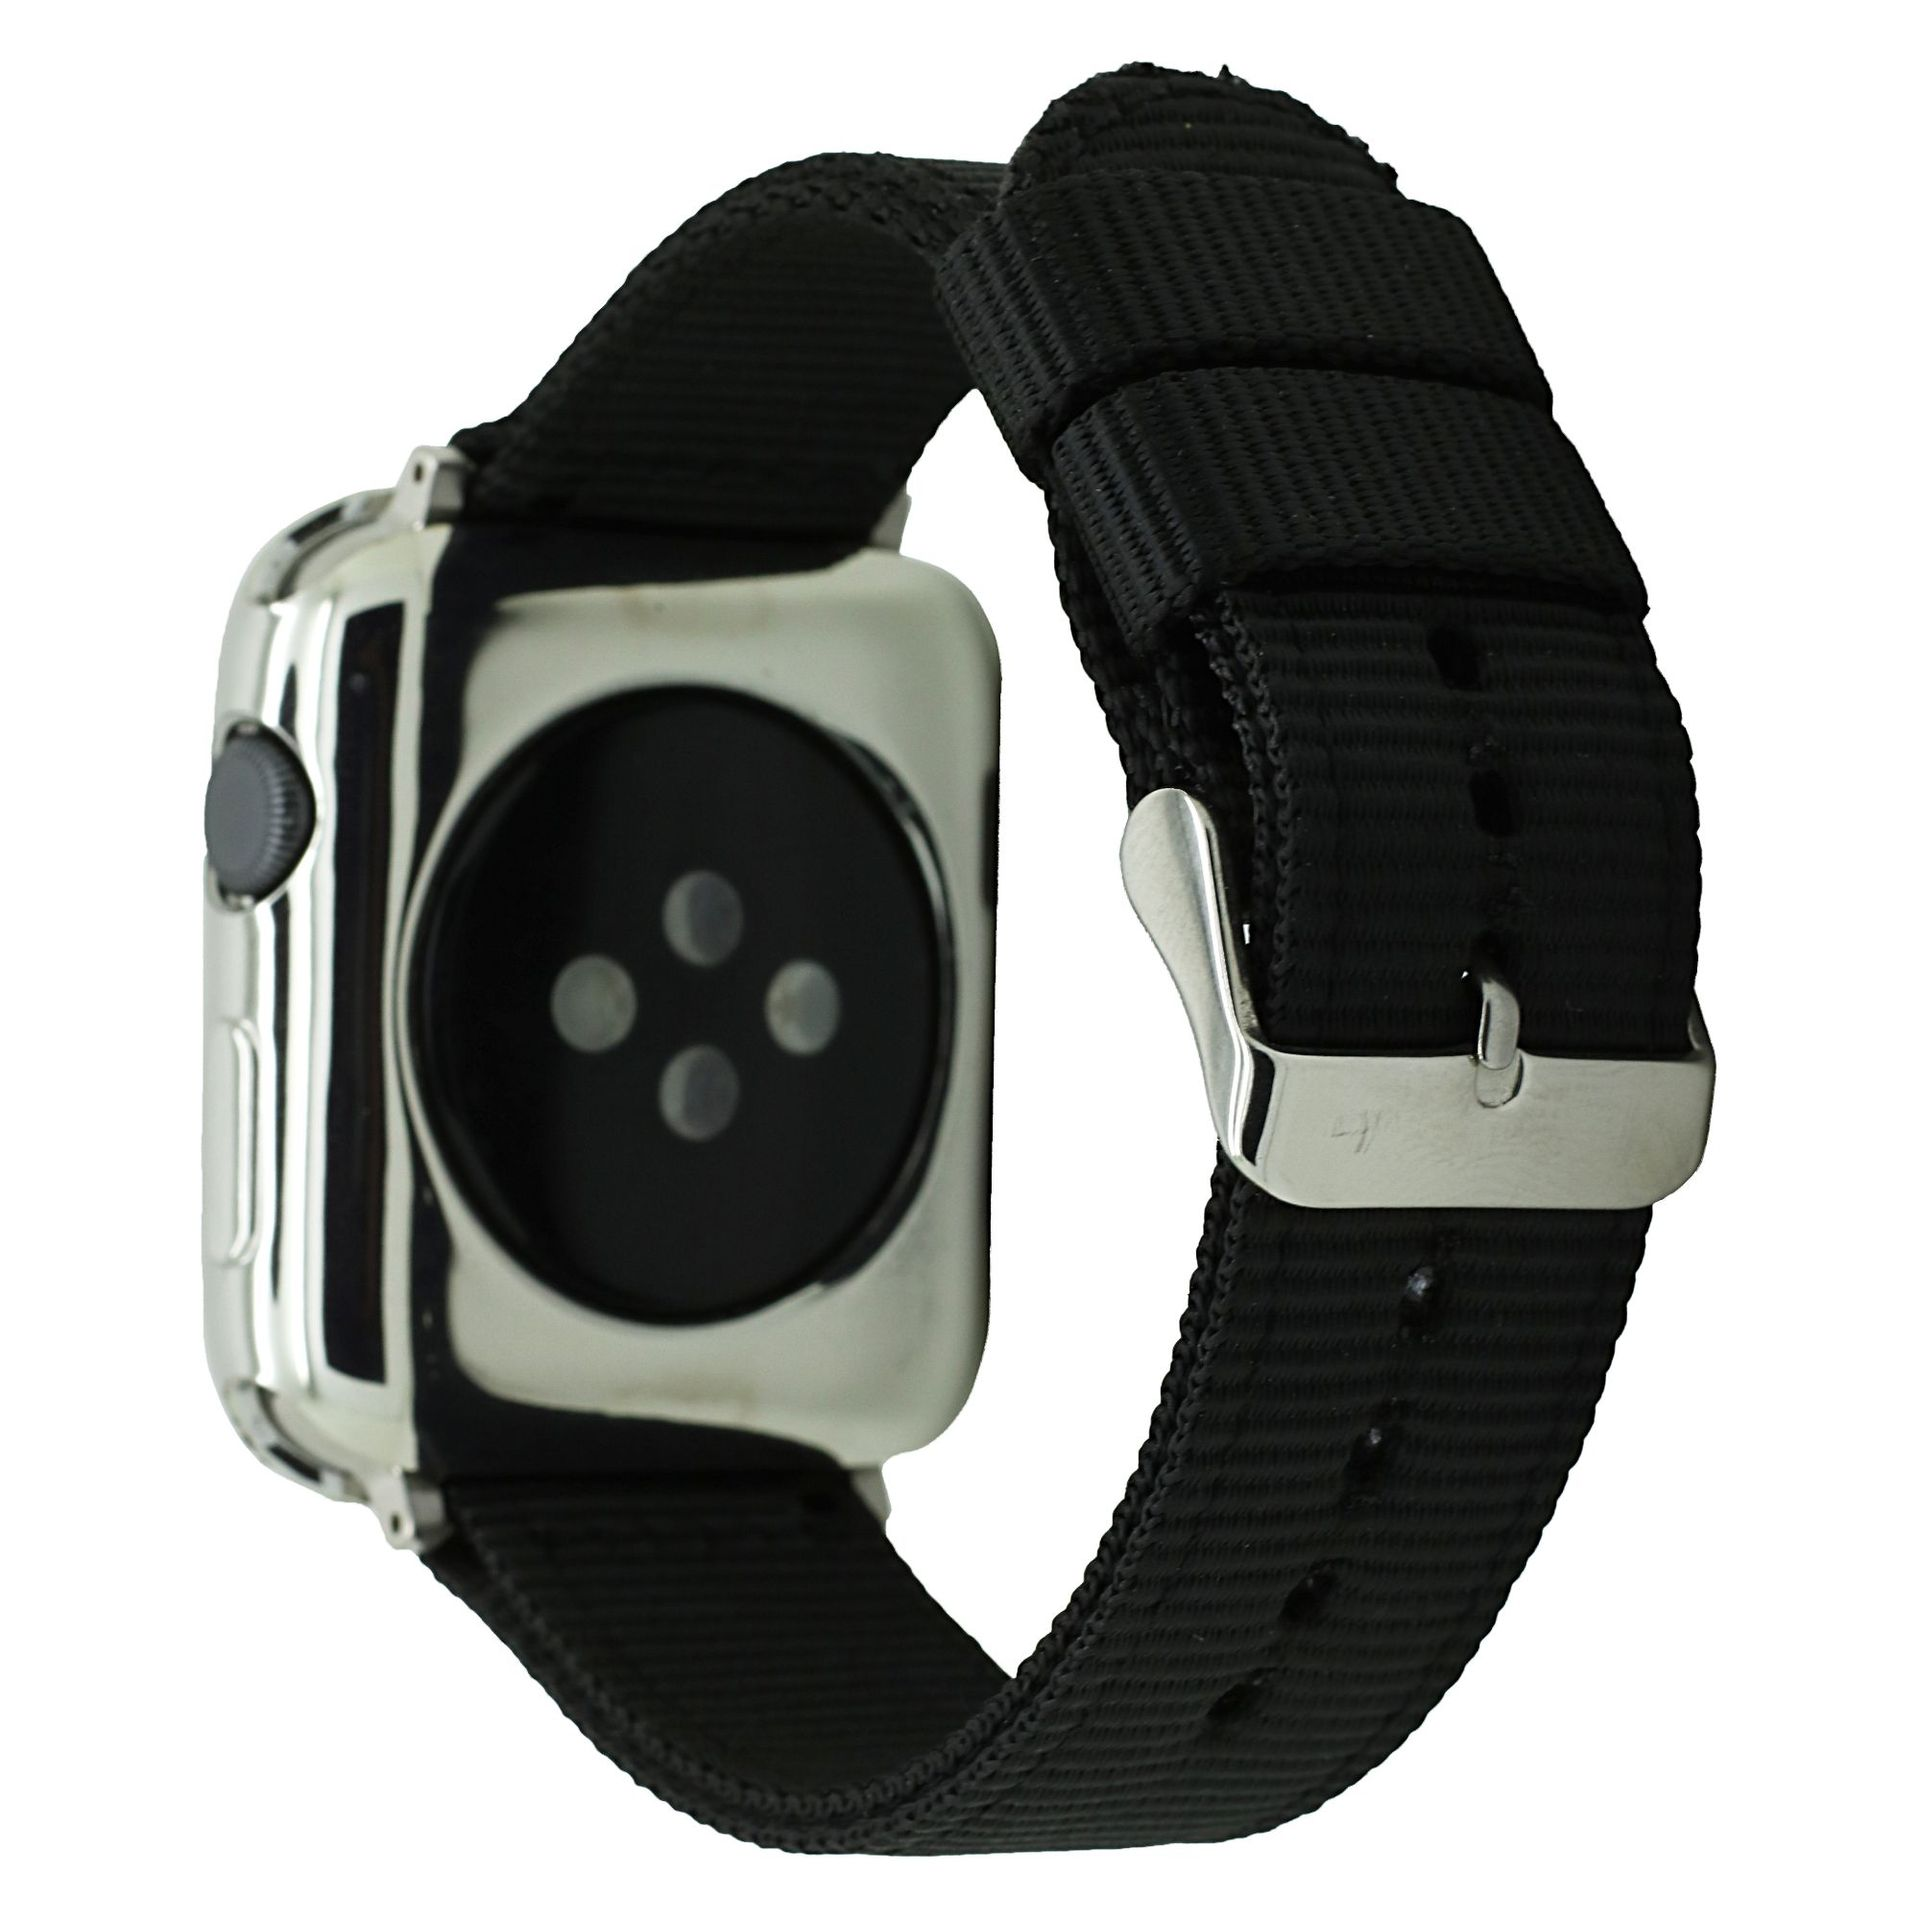 Suitable For Apple Watch Nylon Watchband Iwach Waterproof Nylon Watchband AppleWatch Foreign Trade New Style